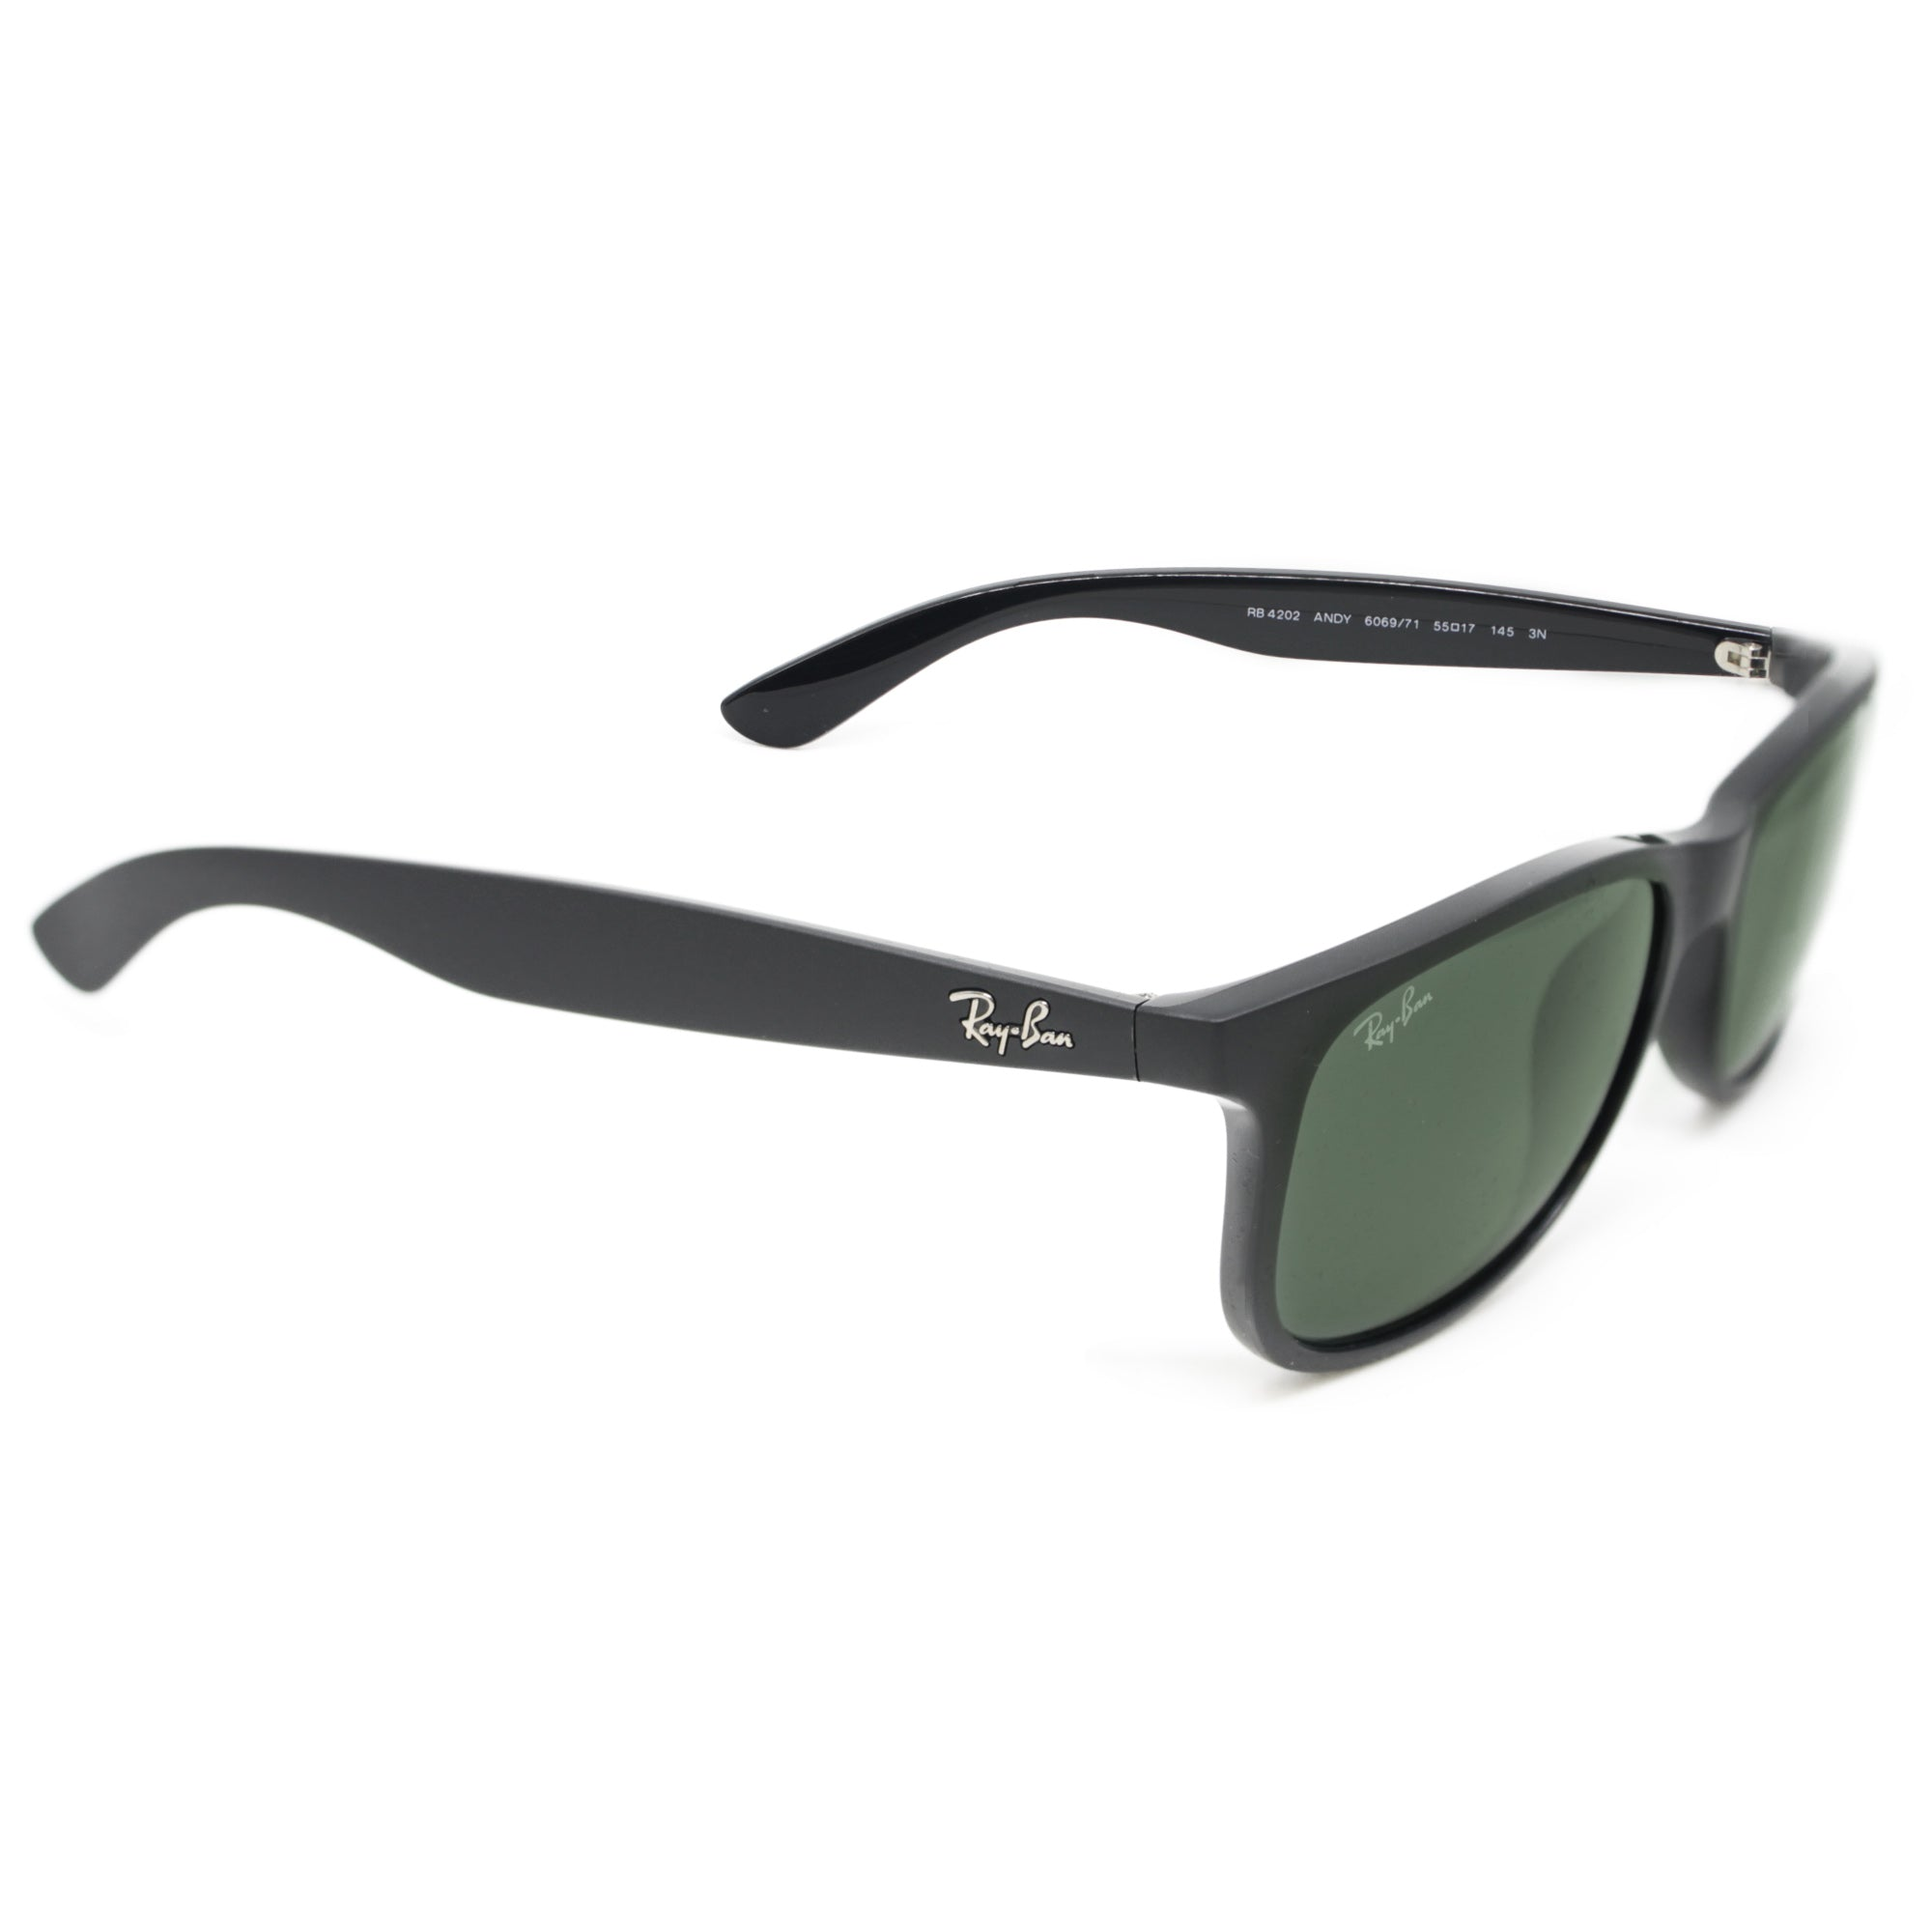 aa90cbc863 Ray-Ban ANDY 4202 CLASSIC UNISEX - BLACK - GREEN 606971-55 ...